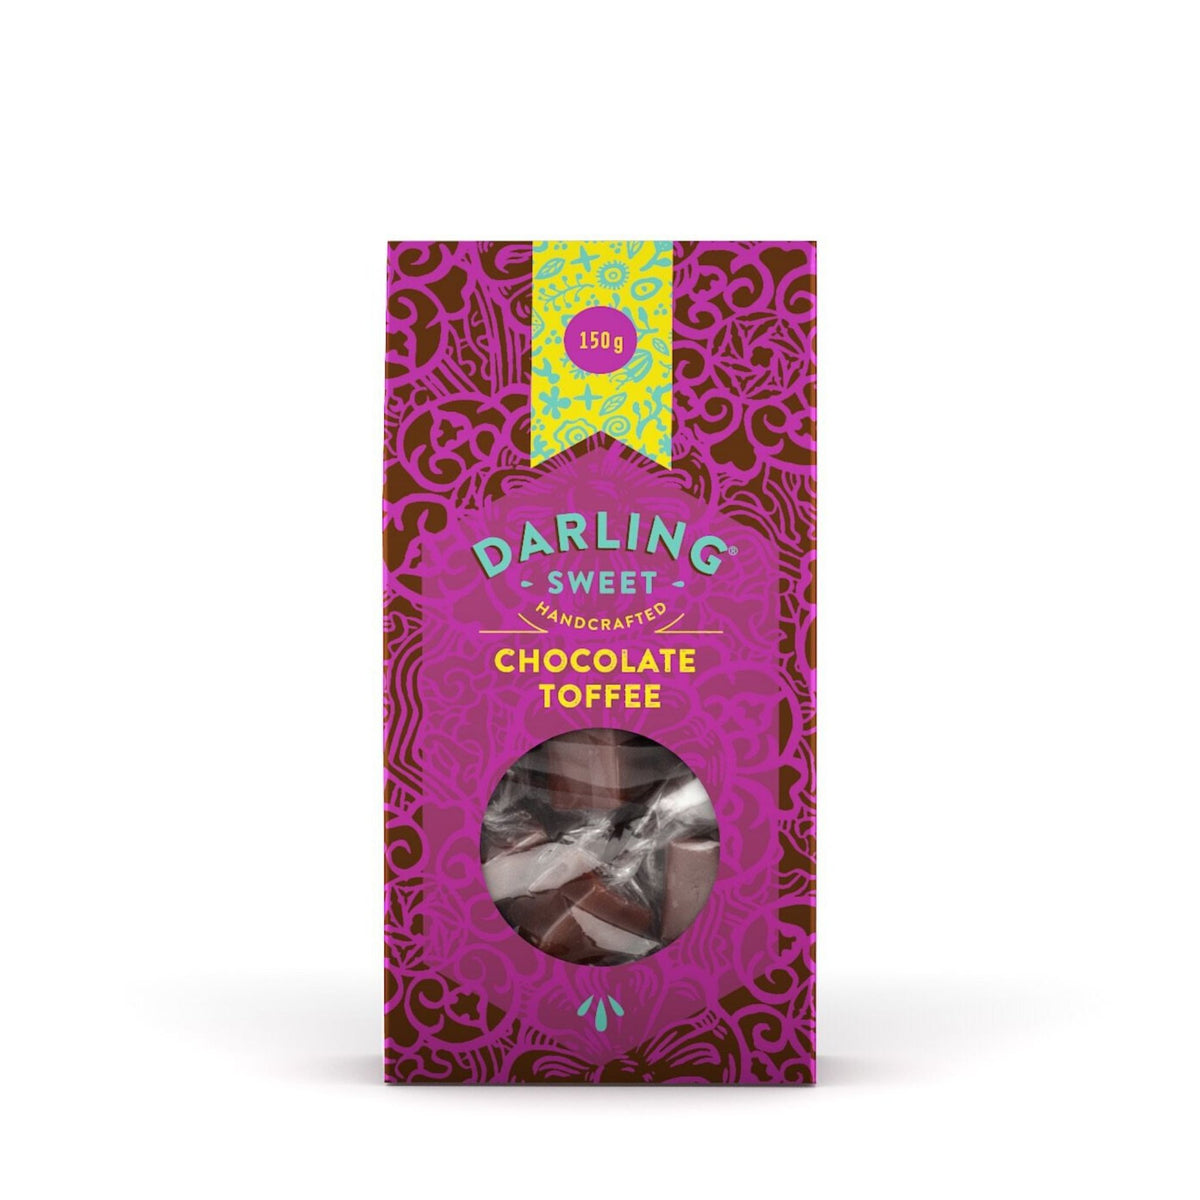 Darling Sweet Chocolate Toffee